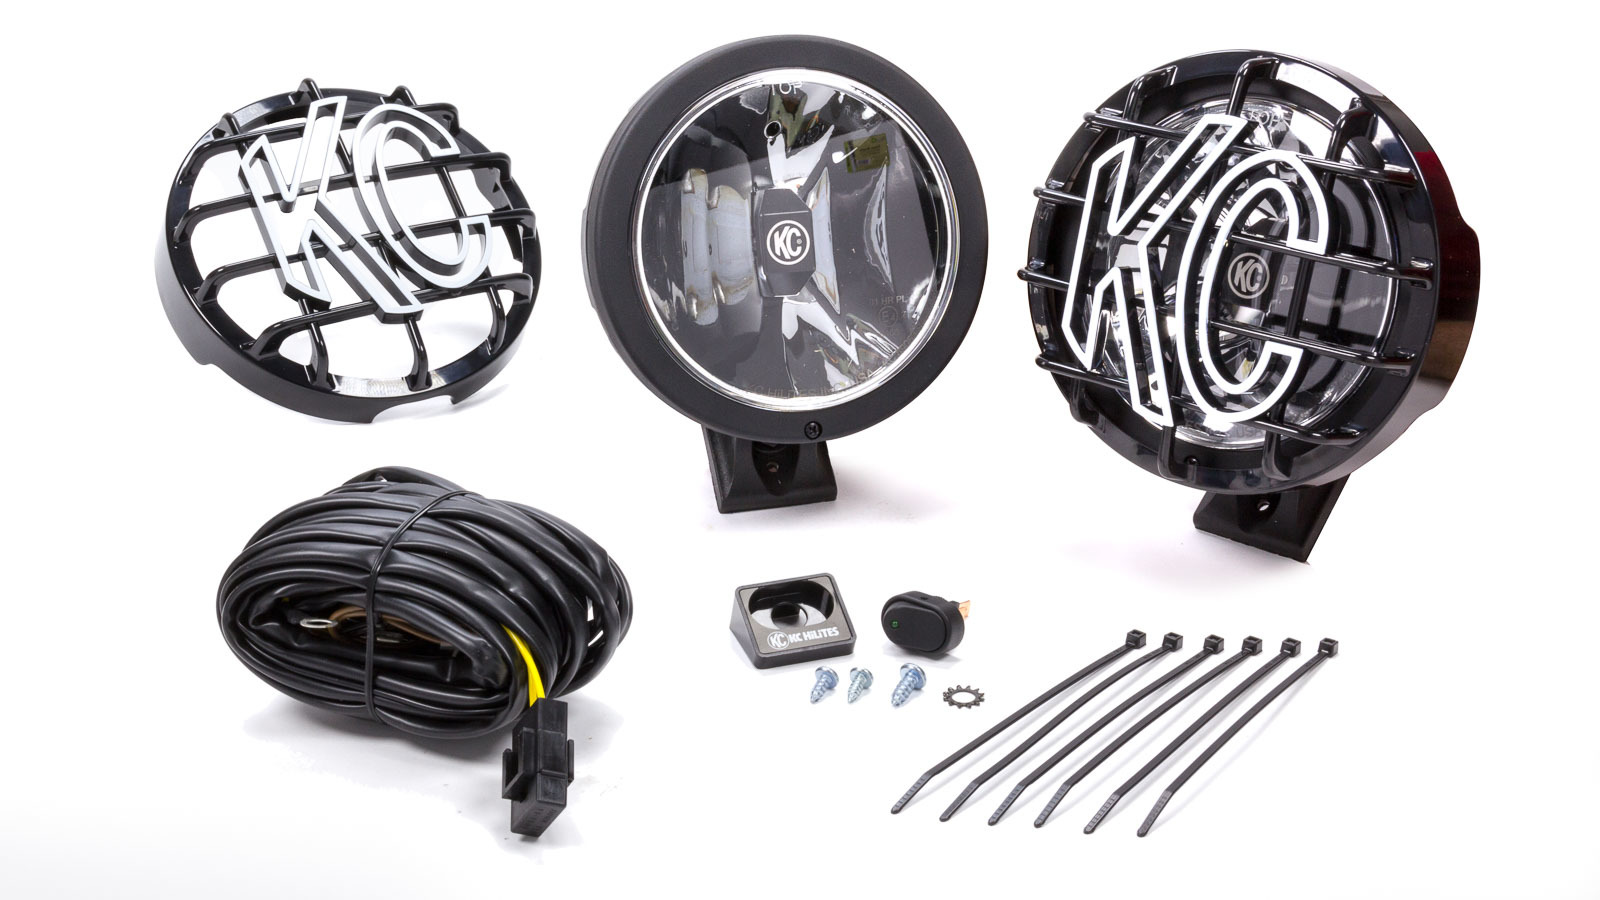 LED Light 6in Pro Sport Gravity G6 KIt Driv Beam